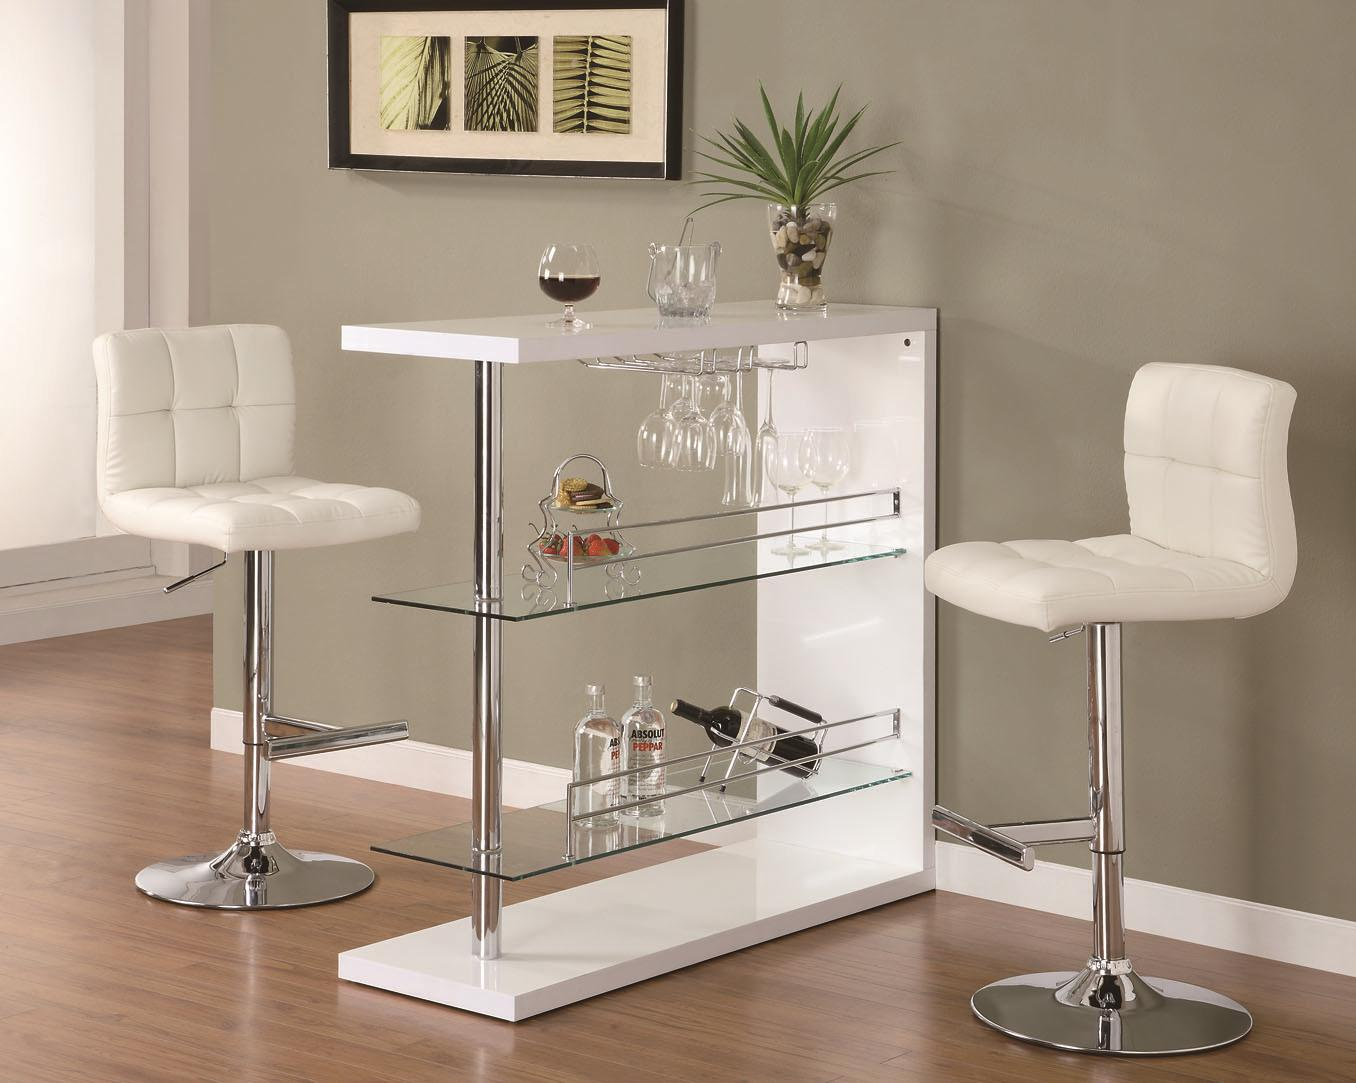 Contemporary Bar Set with Stools